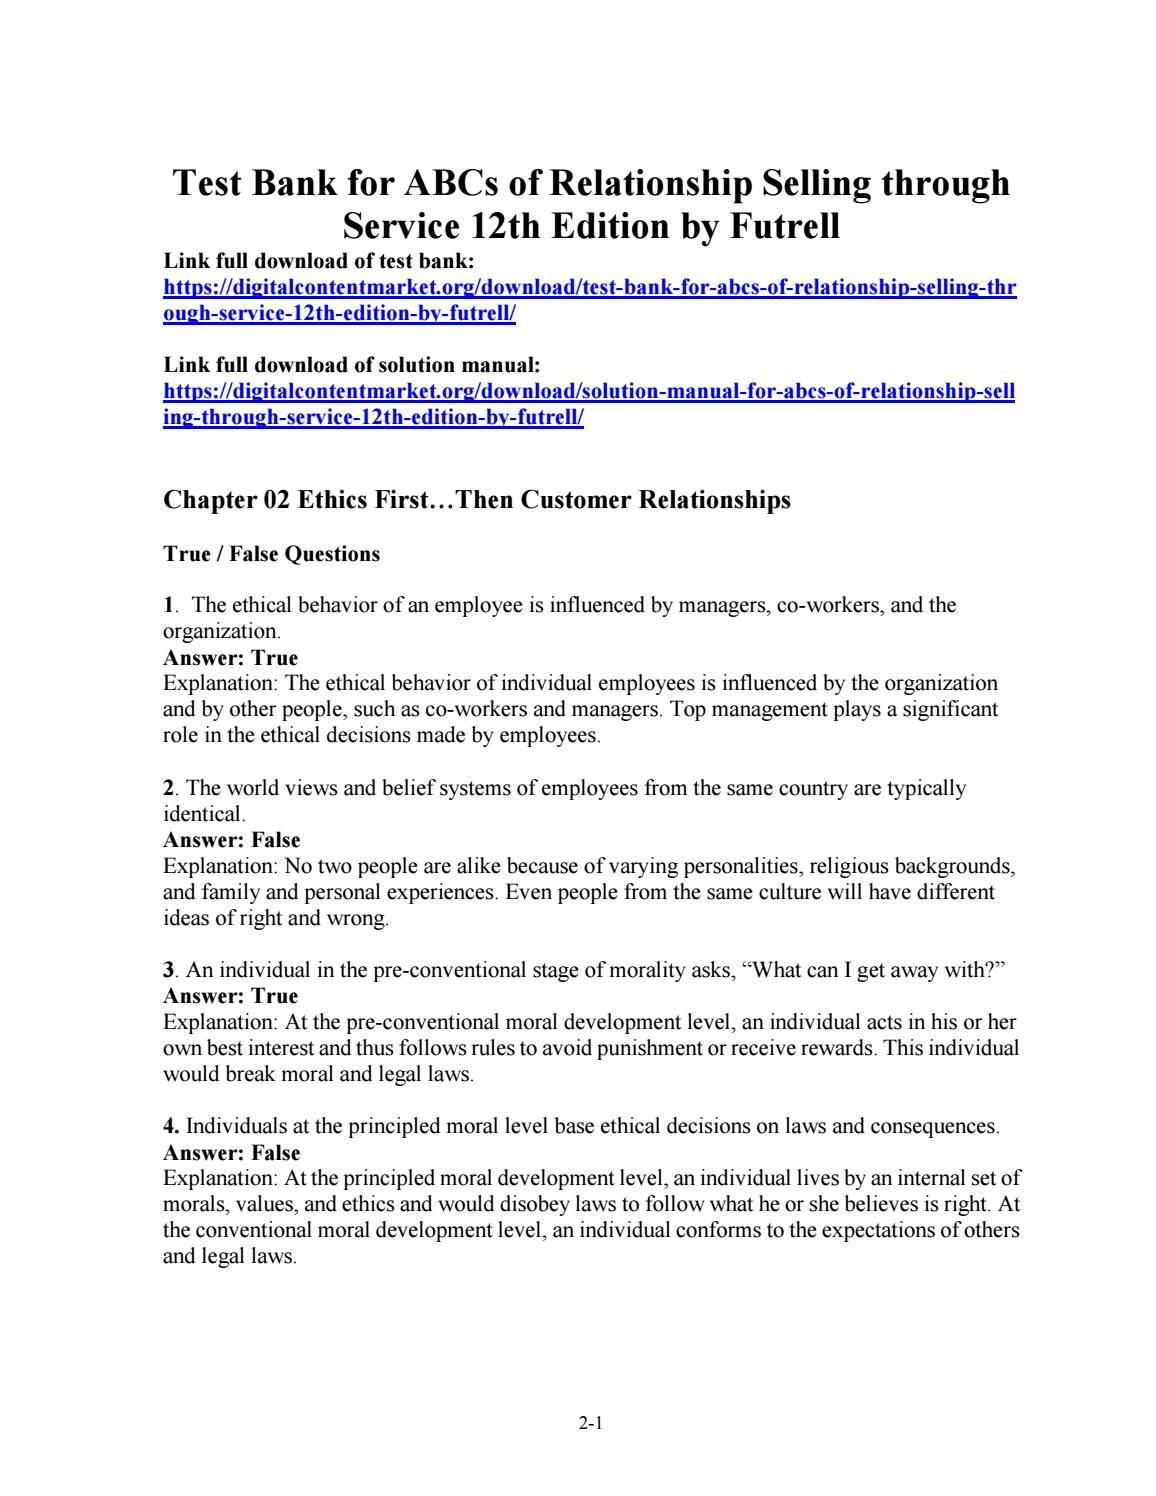 Download test bank for abcs of relationship selling through service 12th  edition by futrell Abcs,